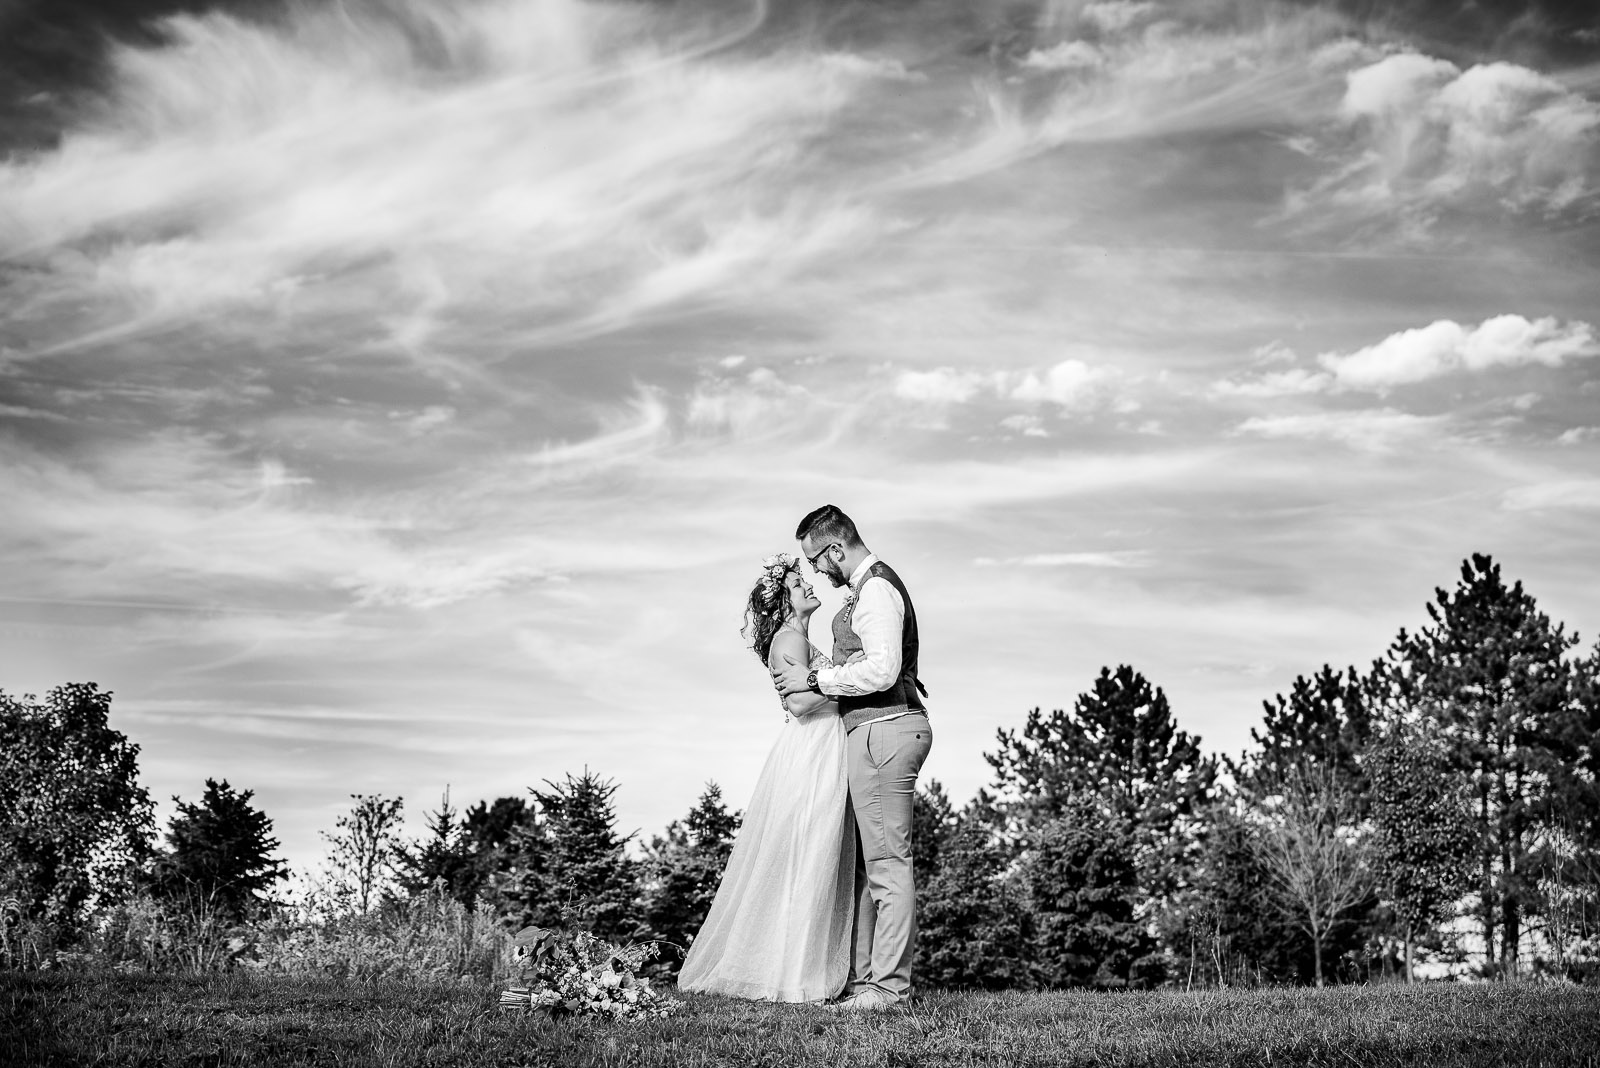 Eric_and_Christy_Photography_Blog_Wedding_Lauren_Jon-29